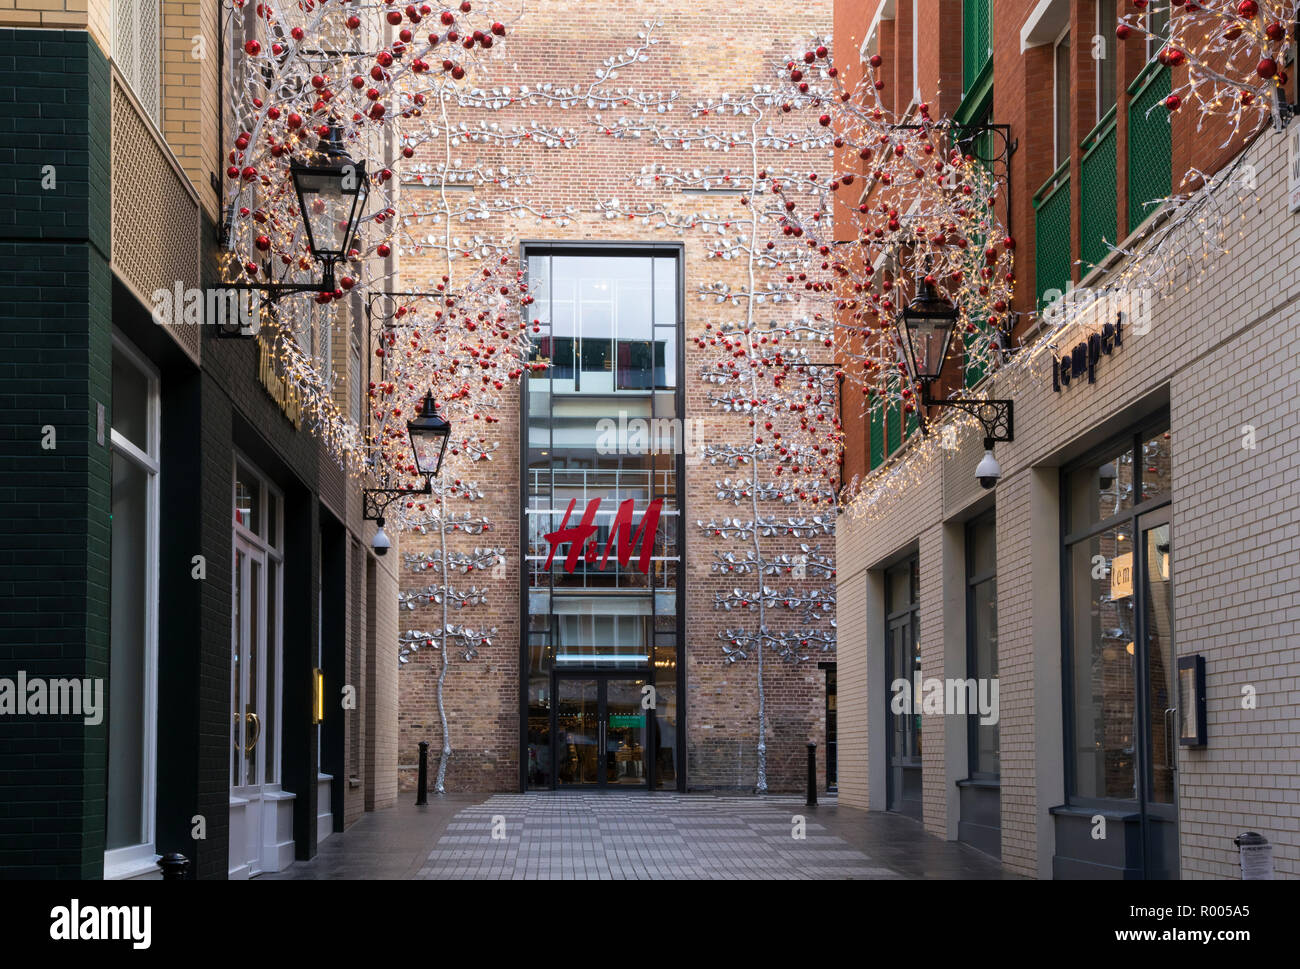 H&M, Mercer Walk, Seven Dials, Covent Garden, London, Christmas decorations and lights Stock Photo